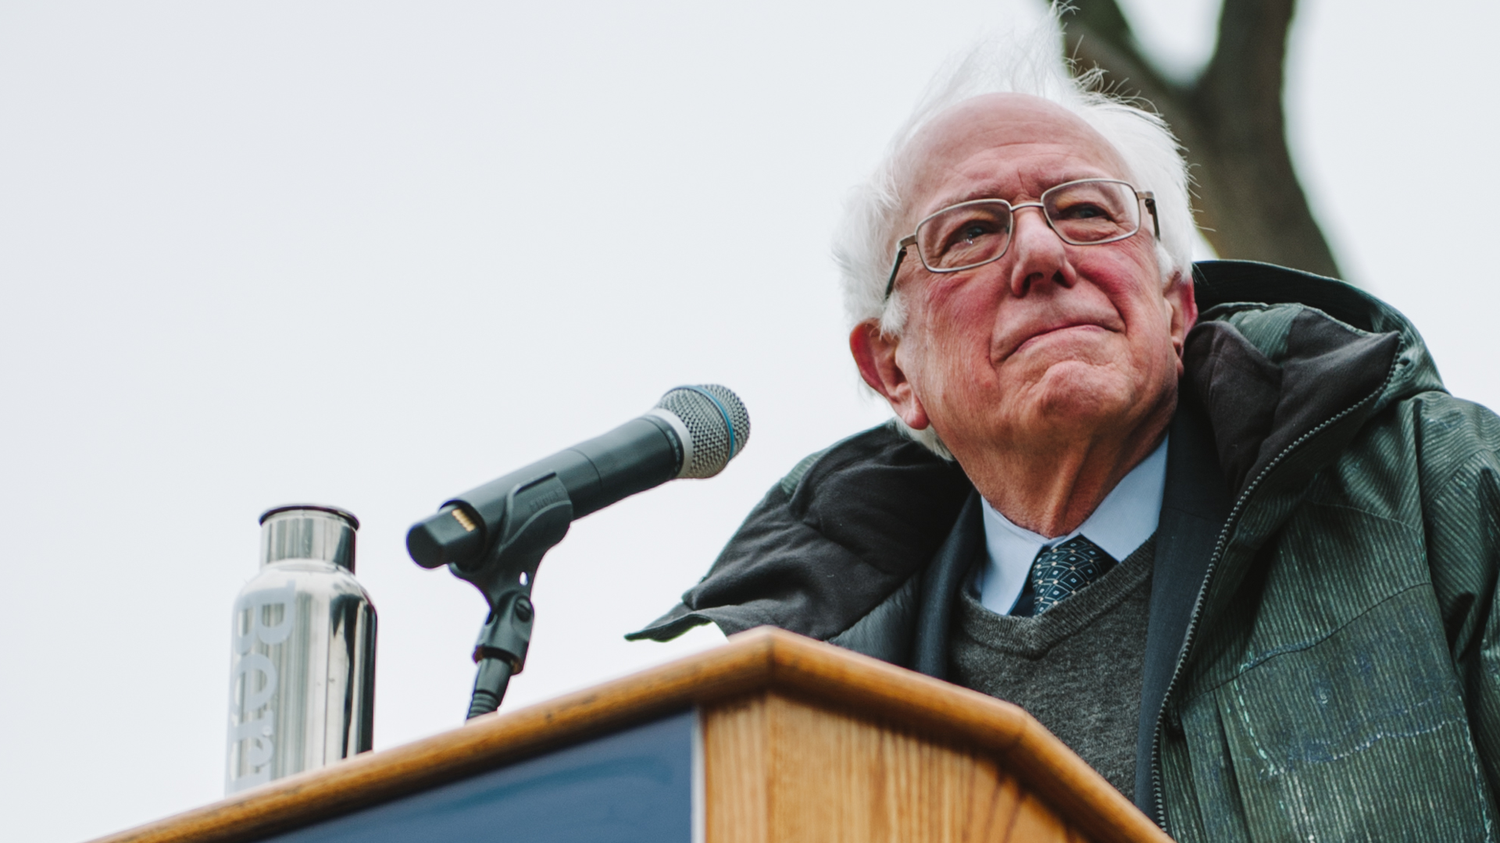 Sen. Bernie Sanders (I-VT) has embraced the Green New Deal